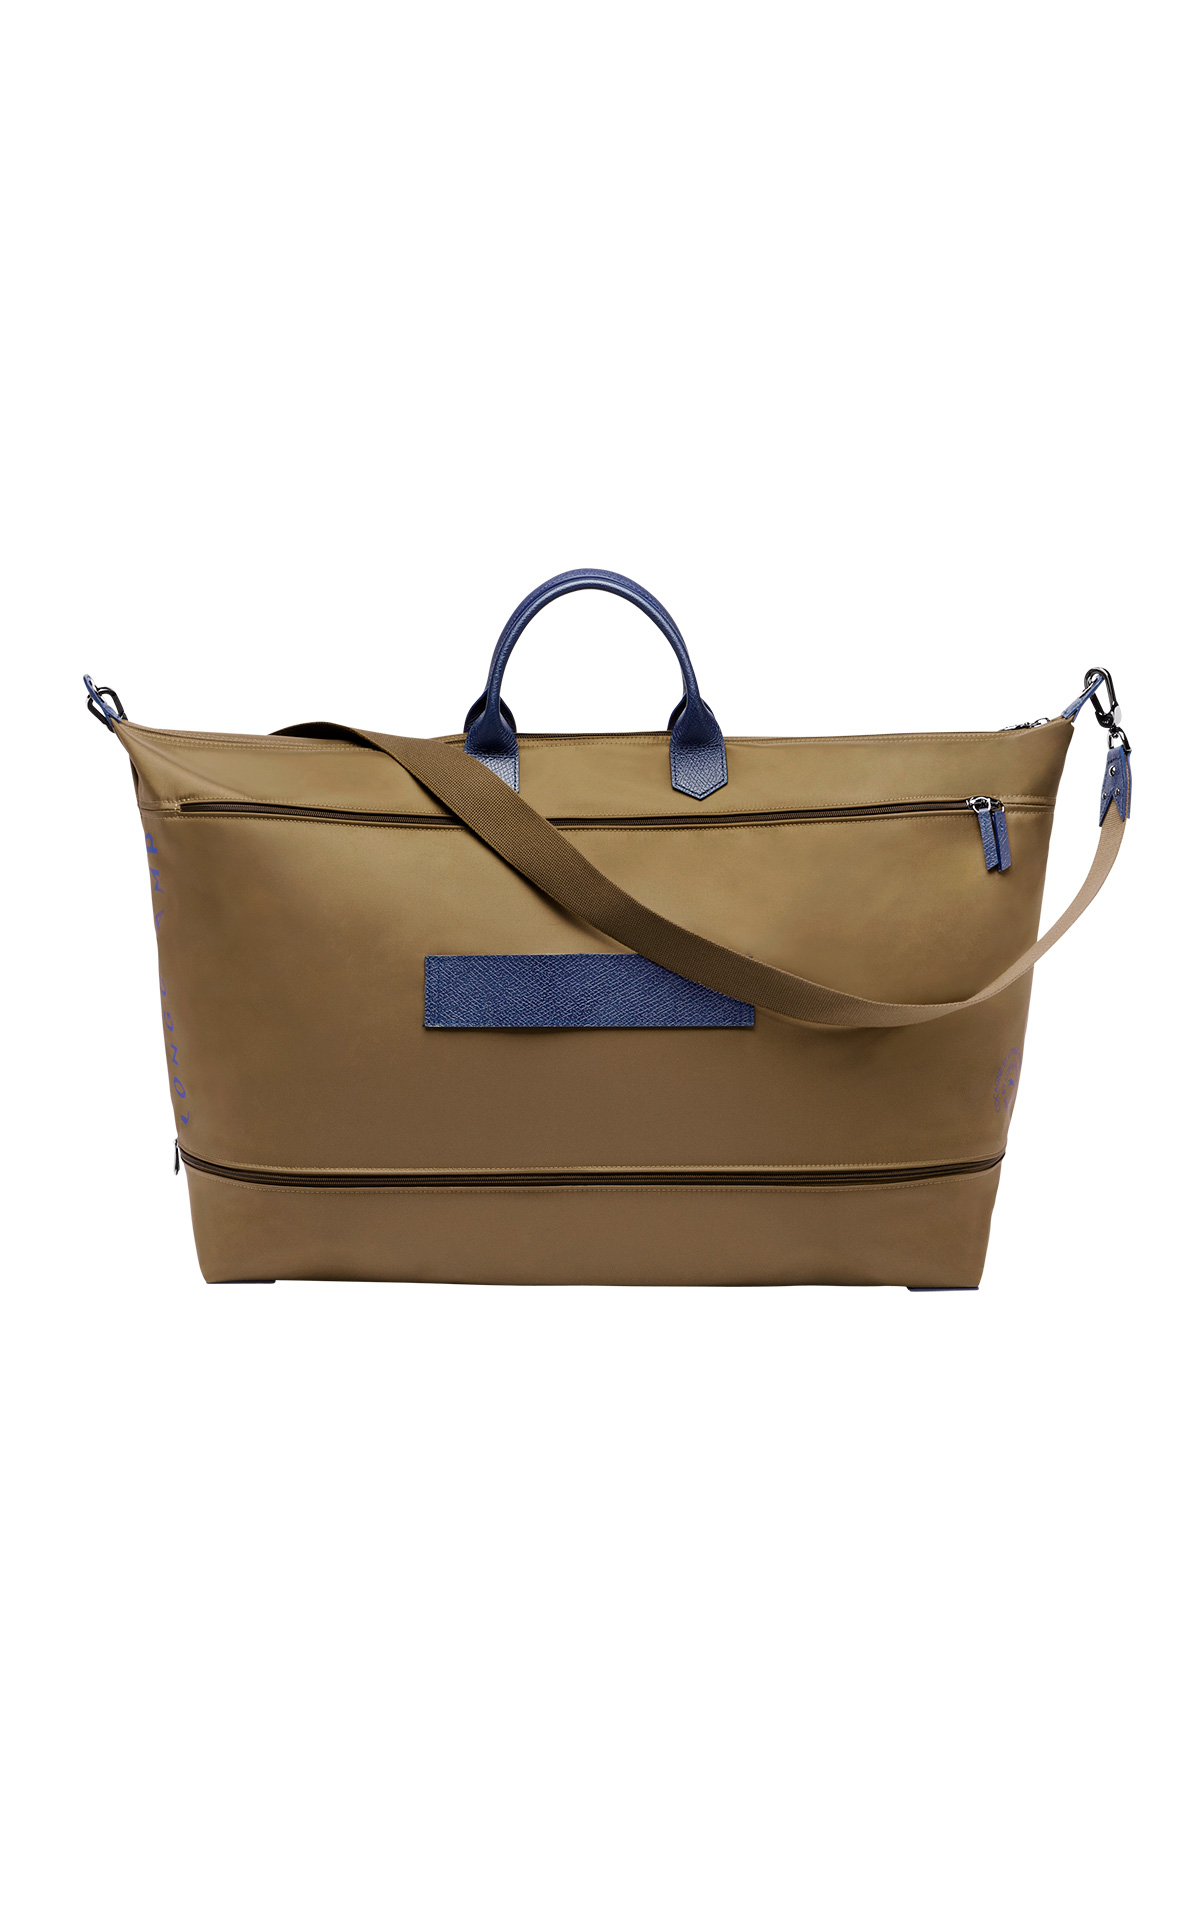 Khaki bag Longchamp